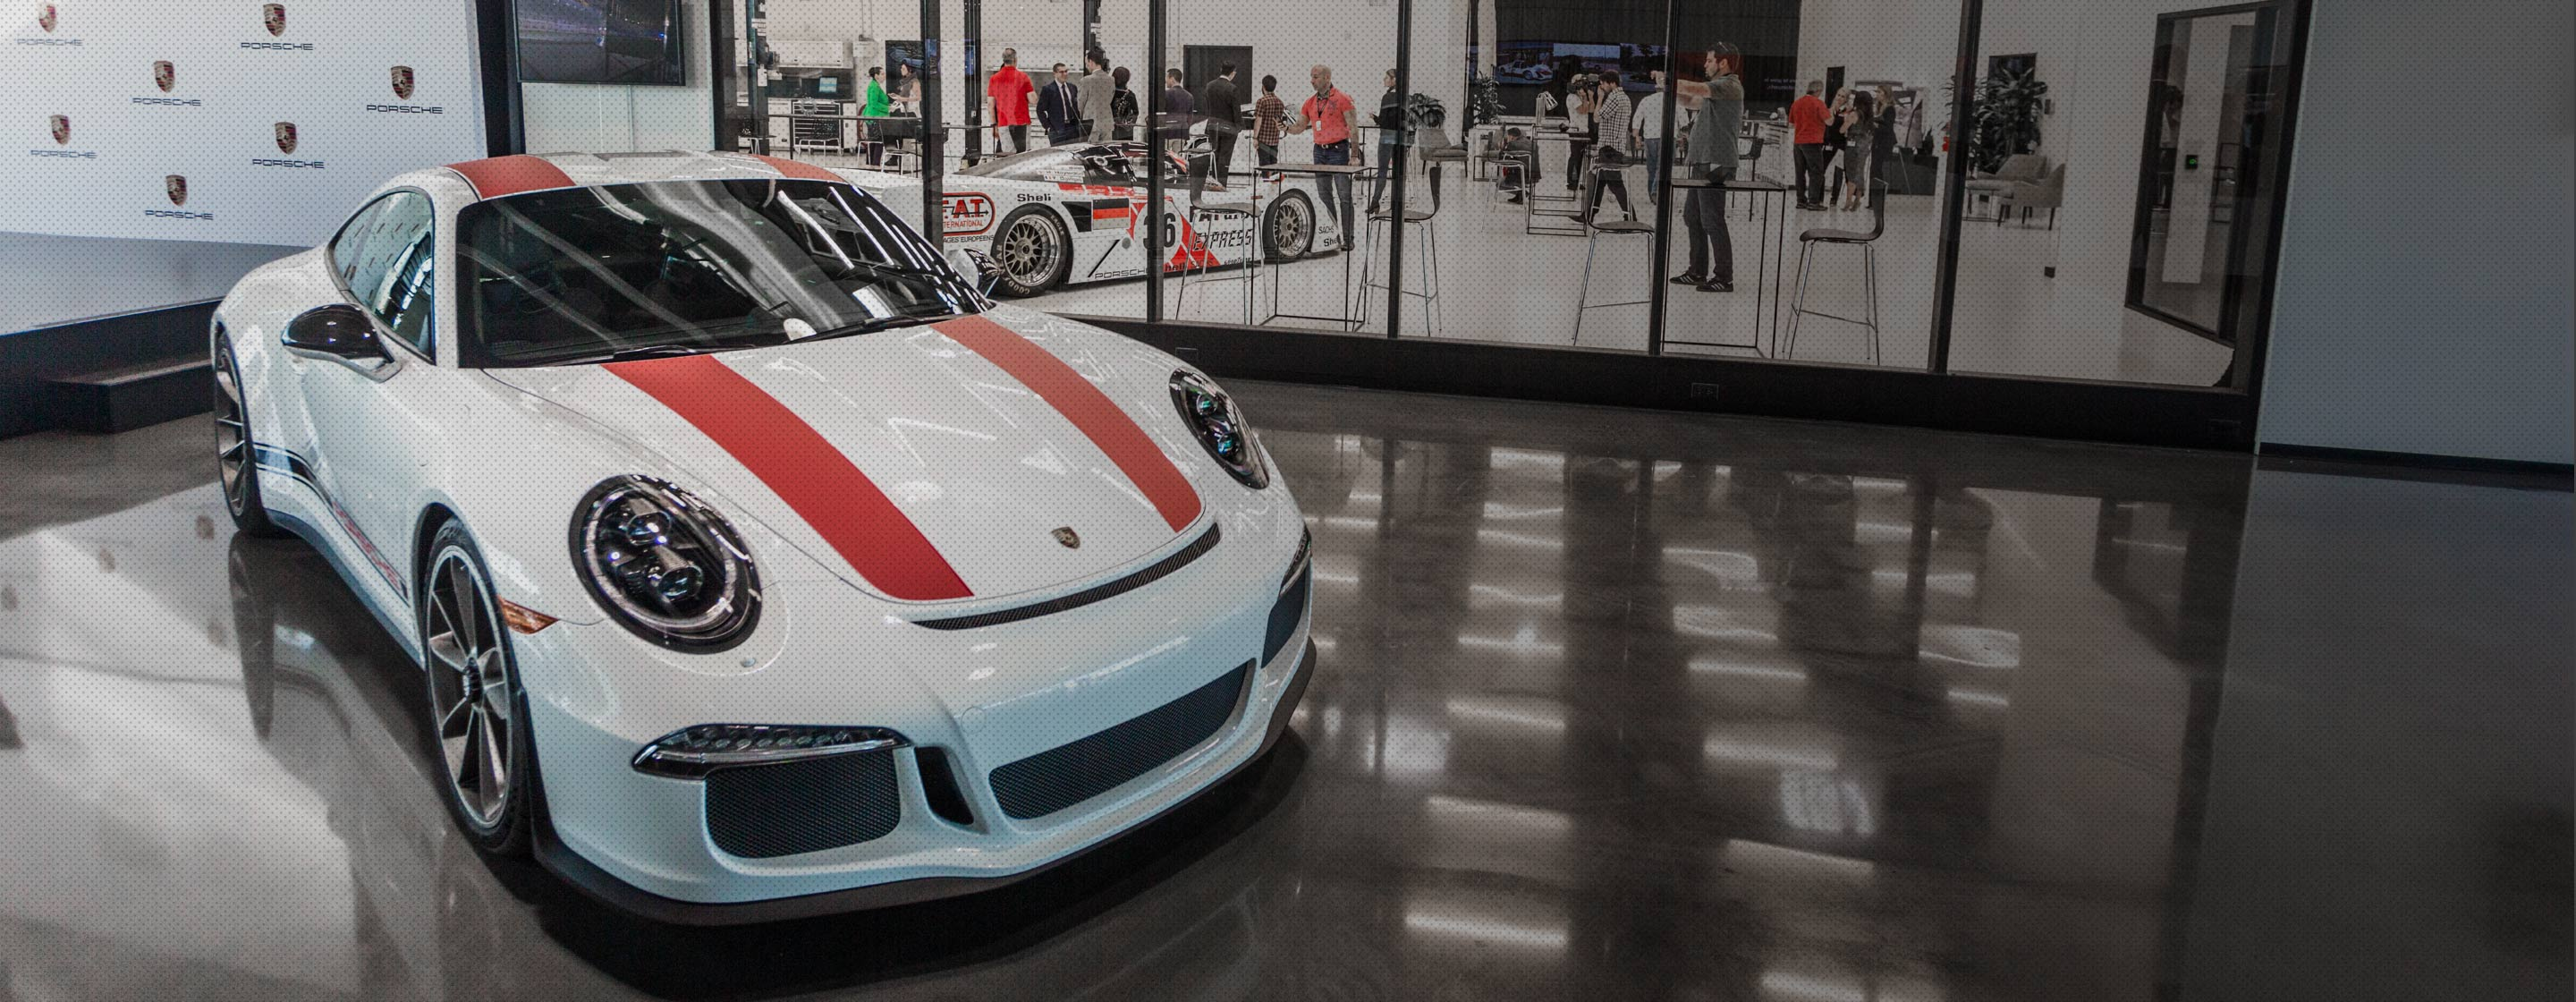 Porsche Experience Center Los Angeles Facilities and Venue Corporate desktop